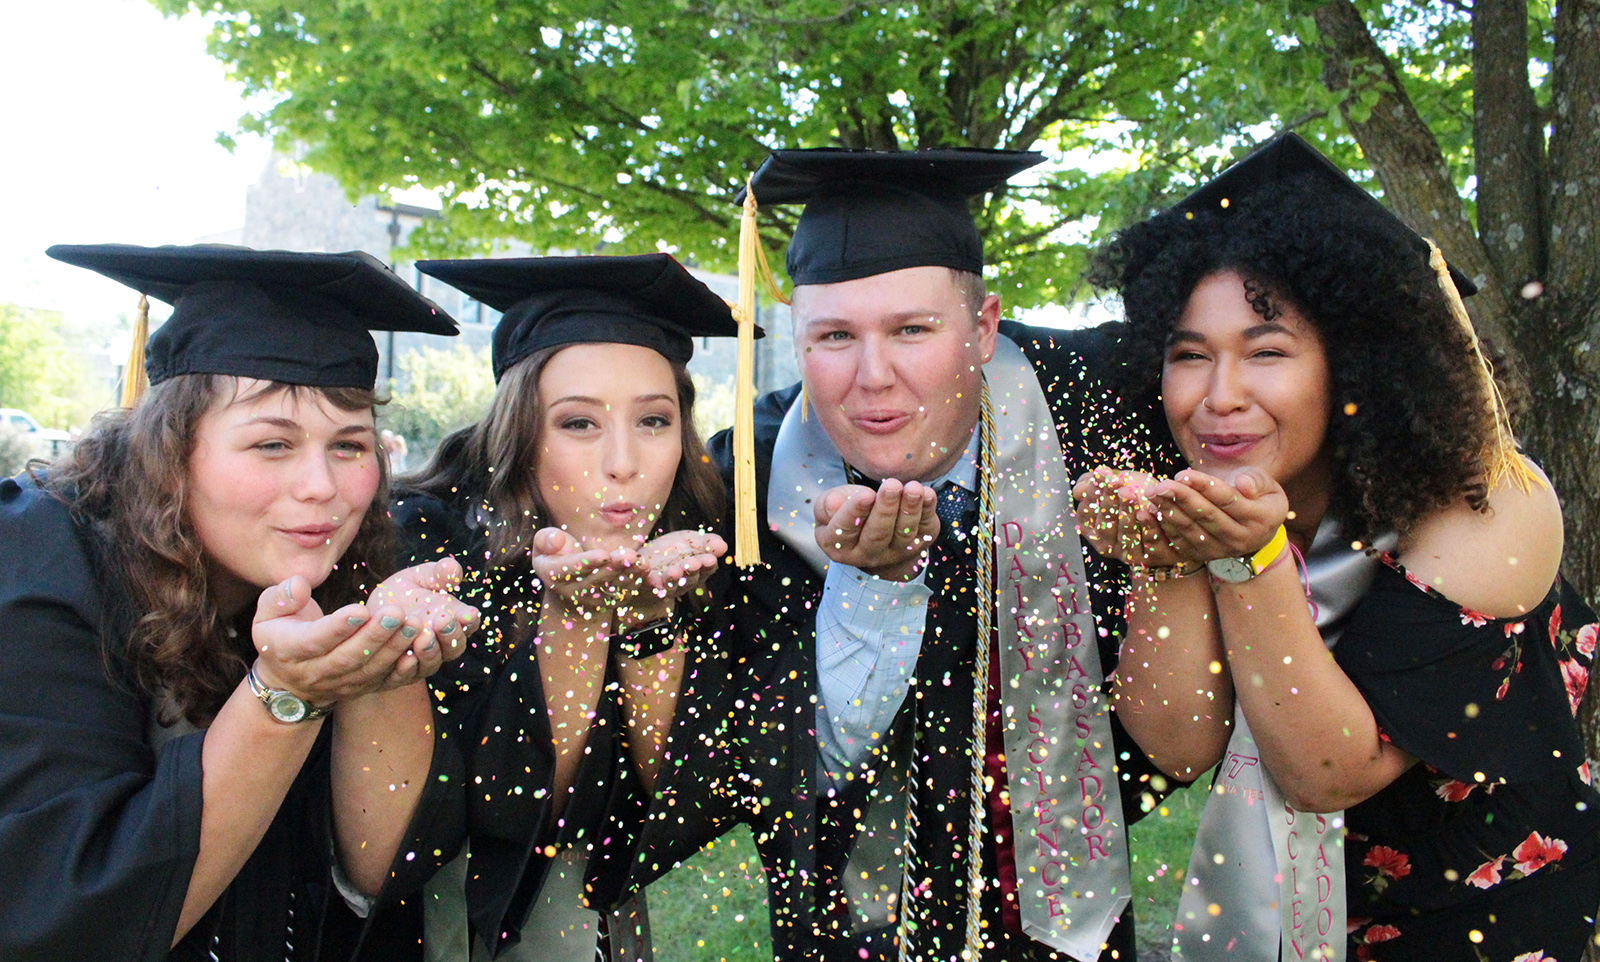 Four 2019 graduates in caps and gowns, blowing glitter from their hands.